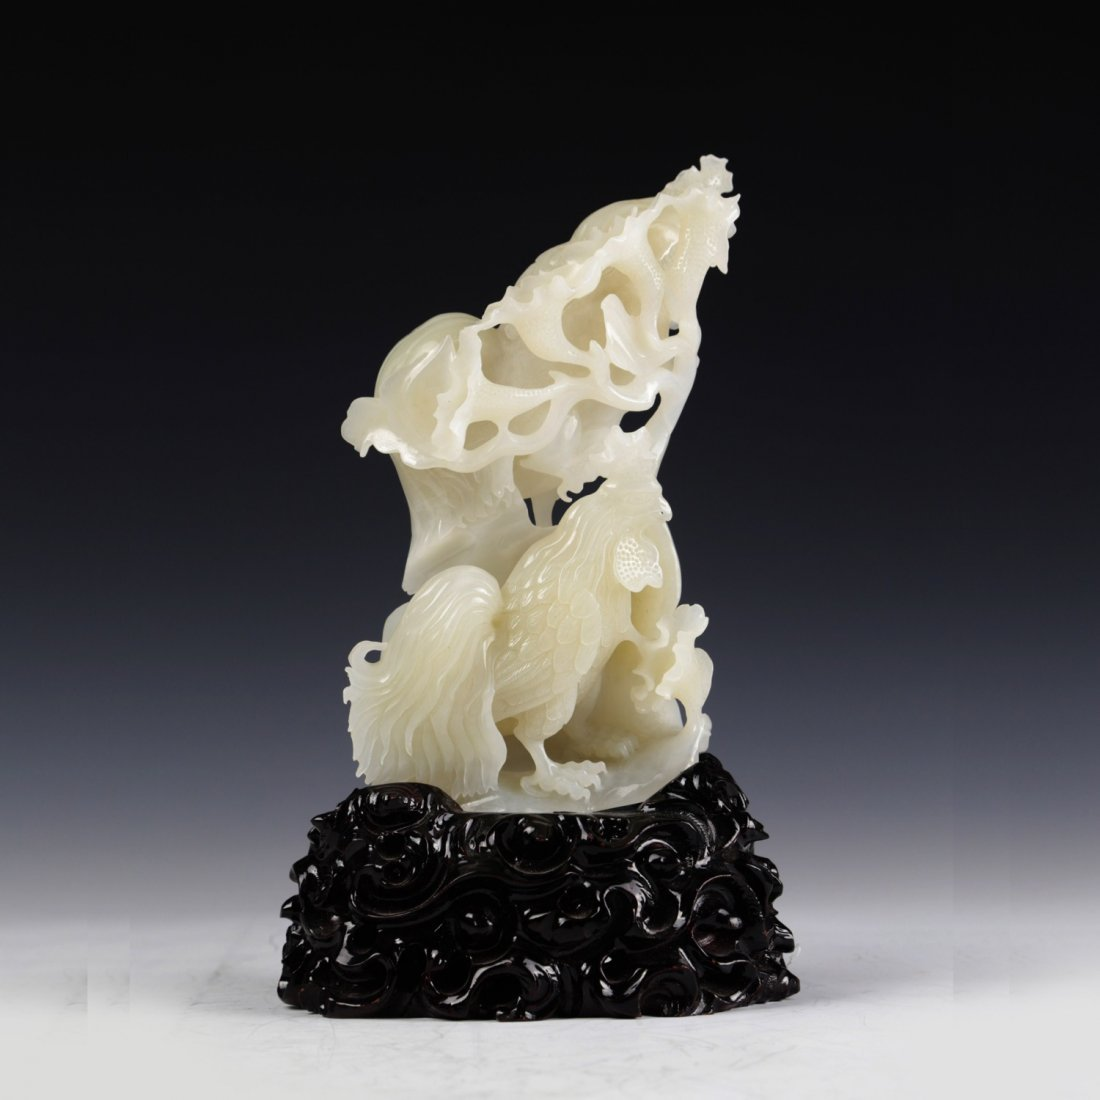 Chinese White Jade Carving Decoration